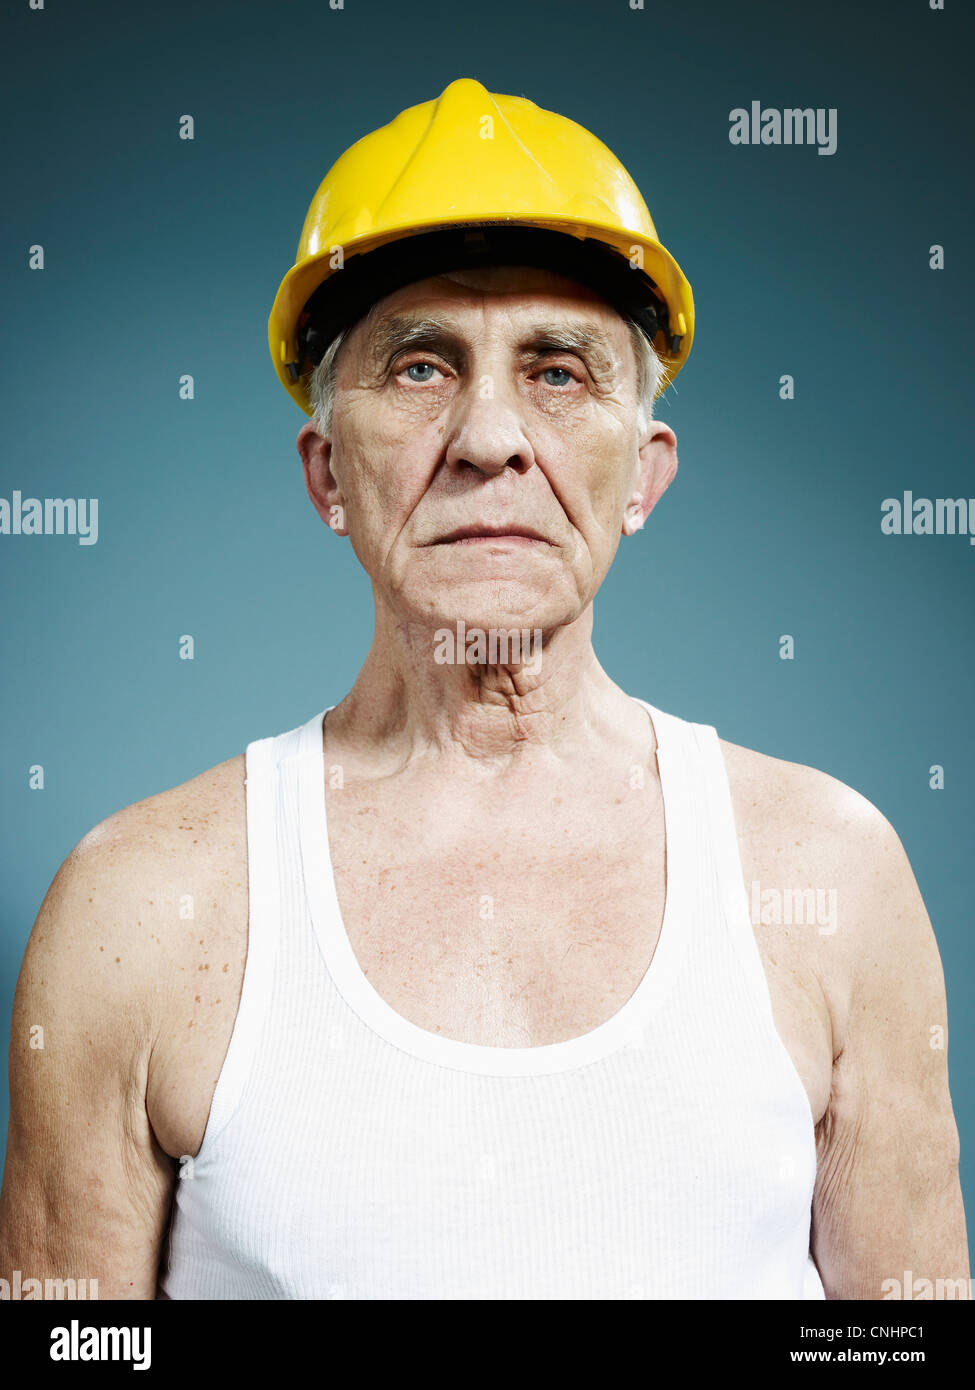 A serious senior man wearing a hardhat and tank top - Stock Image